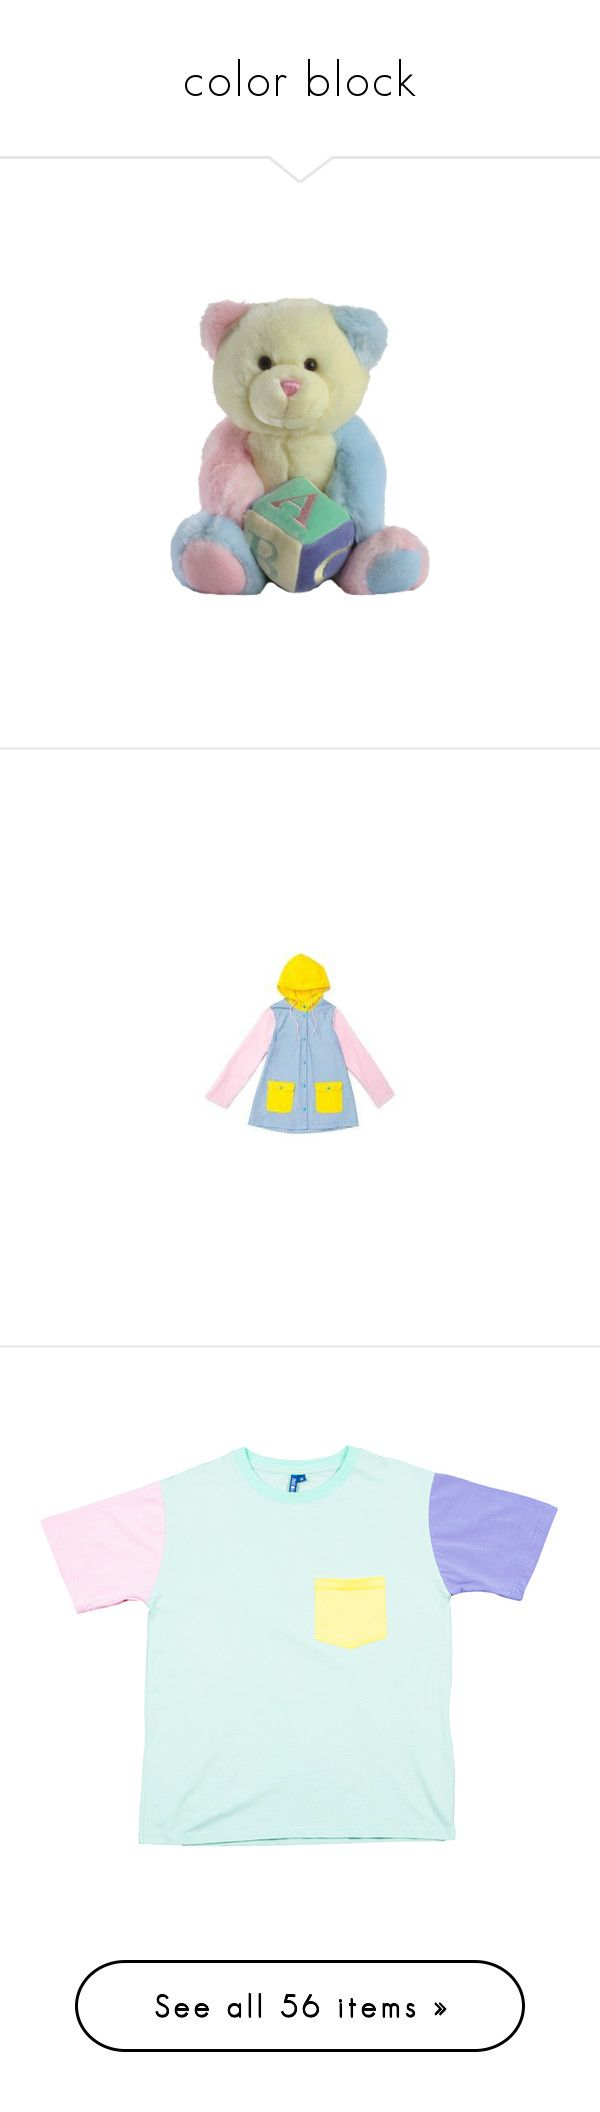 """""""color block"""" by starkyman ❤ liked on Polyvore featuring filler, stuffies, outerwear, coats, colorblock coat, blue raincoat, color block coat, blue coat, pastel coat and tops"""